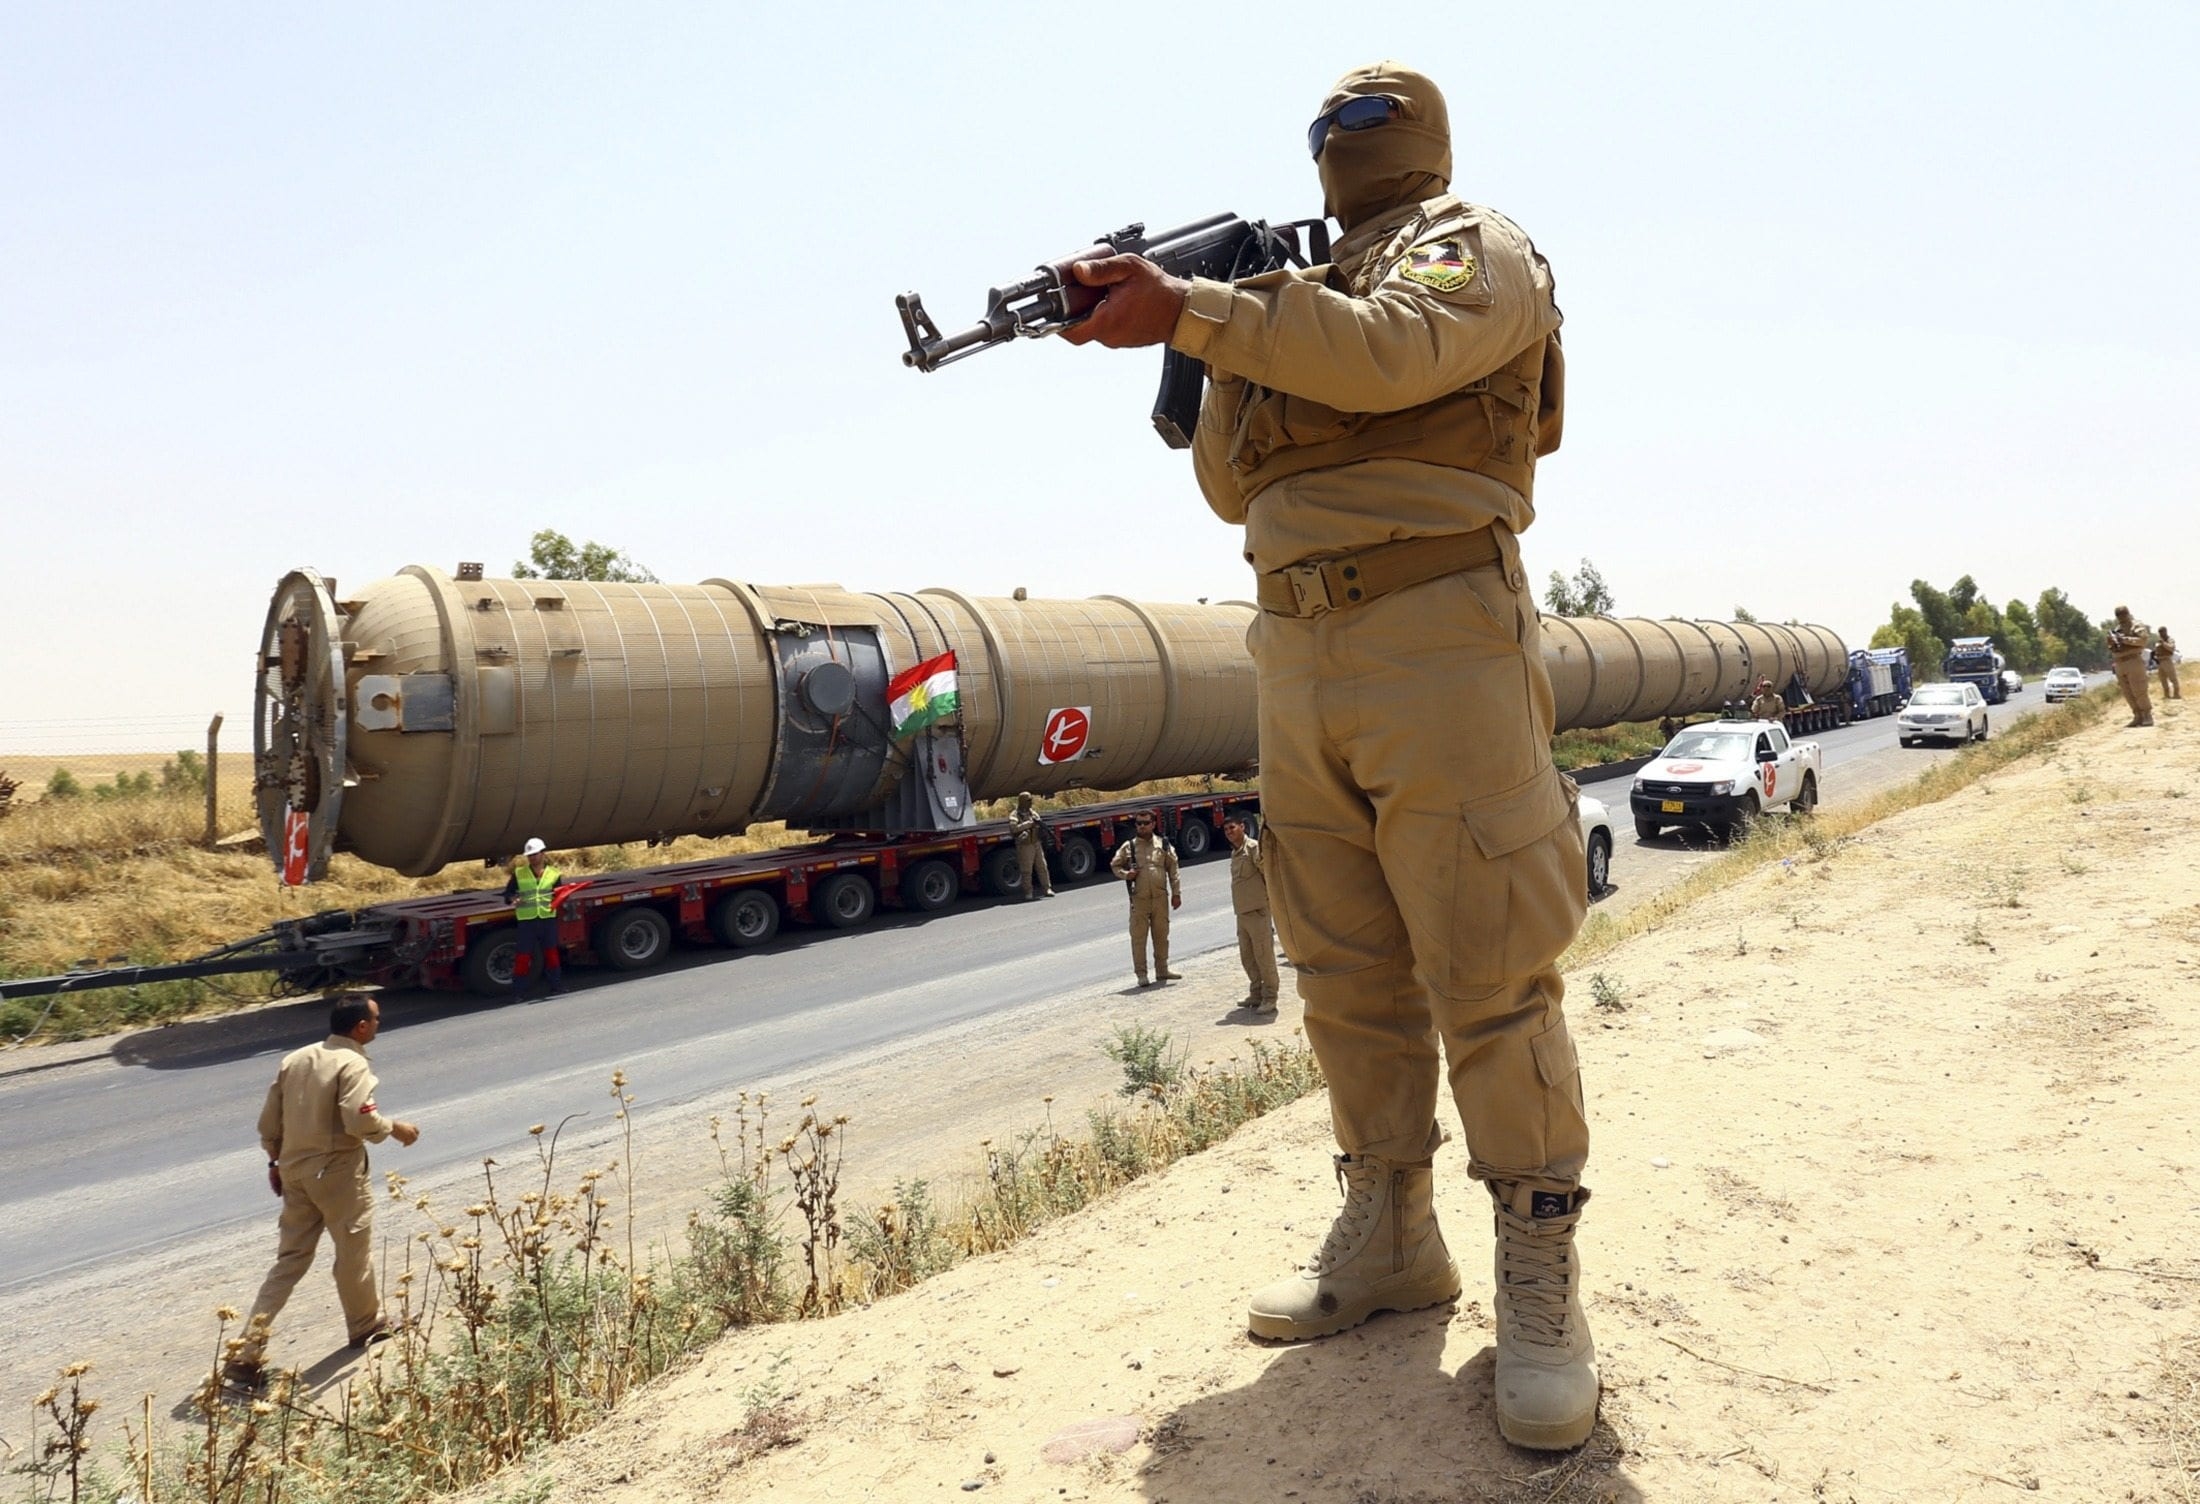 Image A member of the Kurdish security forces takes up position with his weapon as he guards a section of an oil refinery, which is being brought on a truck to Kalak refinery in the outskirts of Arbil, in Iraq's Kurdistan region, July 14, 2014. (REUTERS/Stringer)